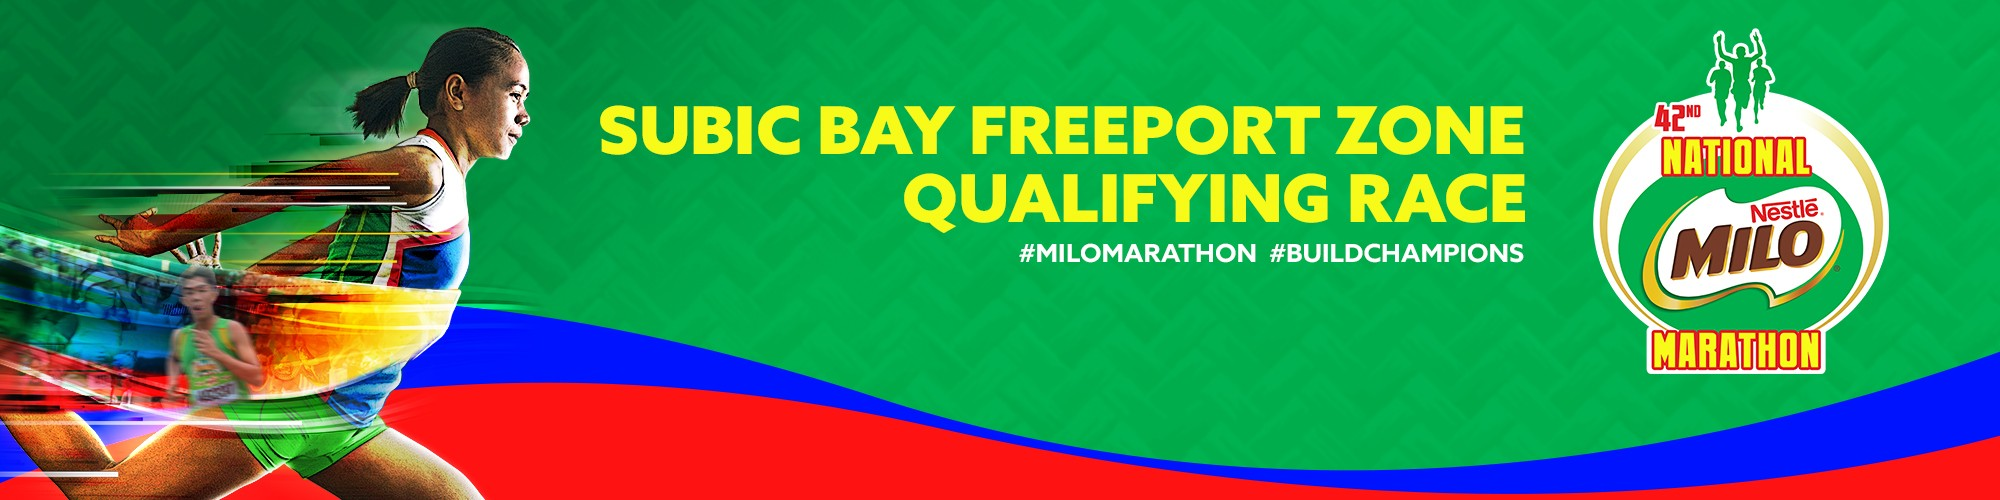 2019 National MILO Marathon Subic Bay Freeport Zone